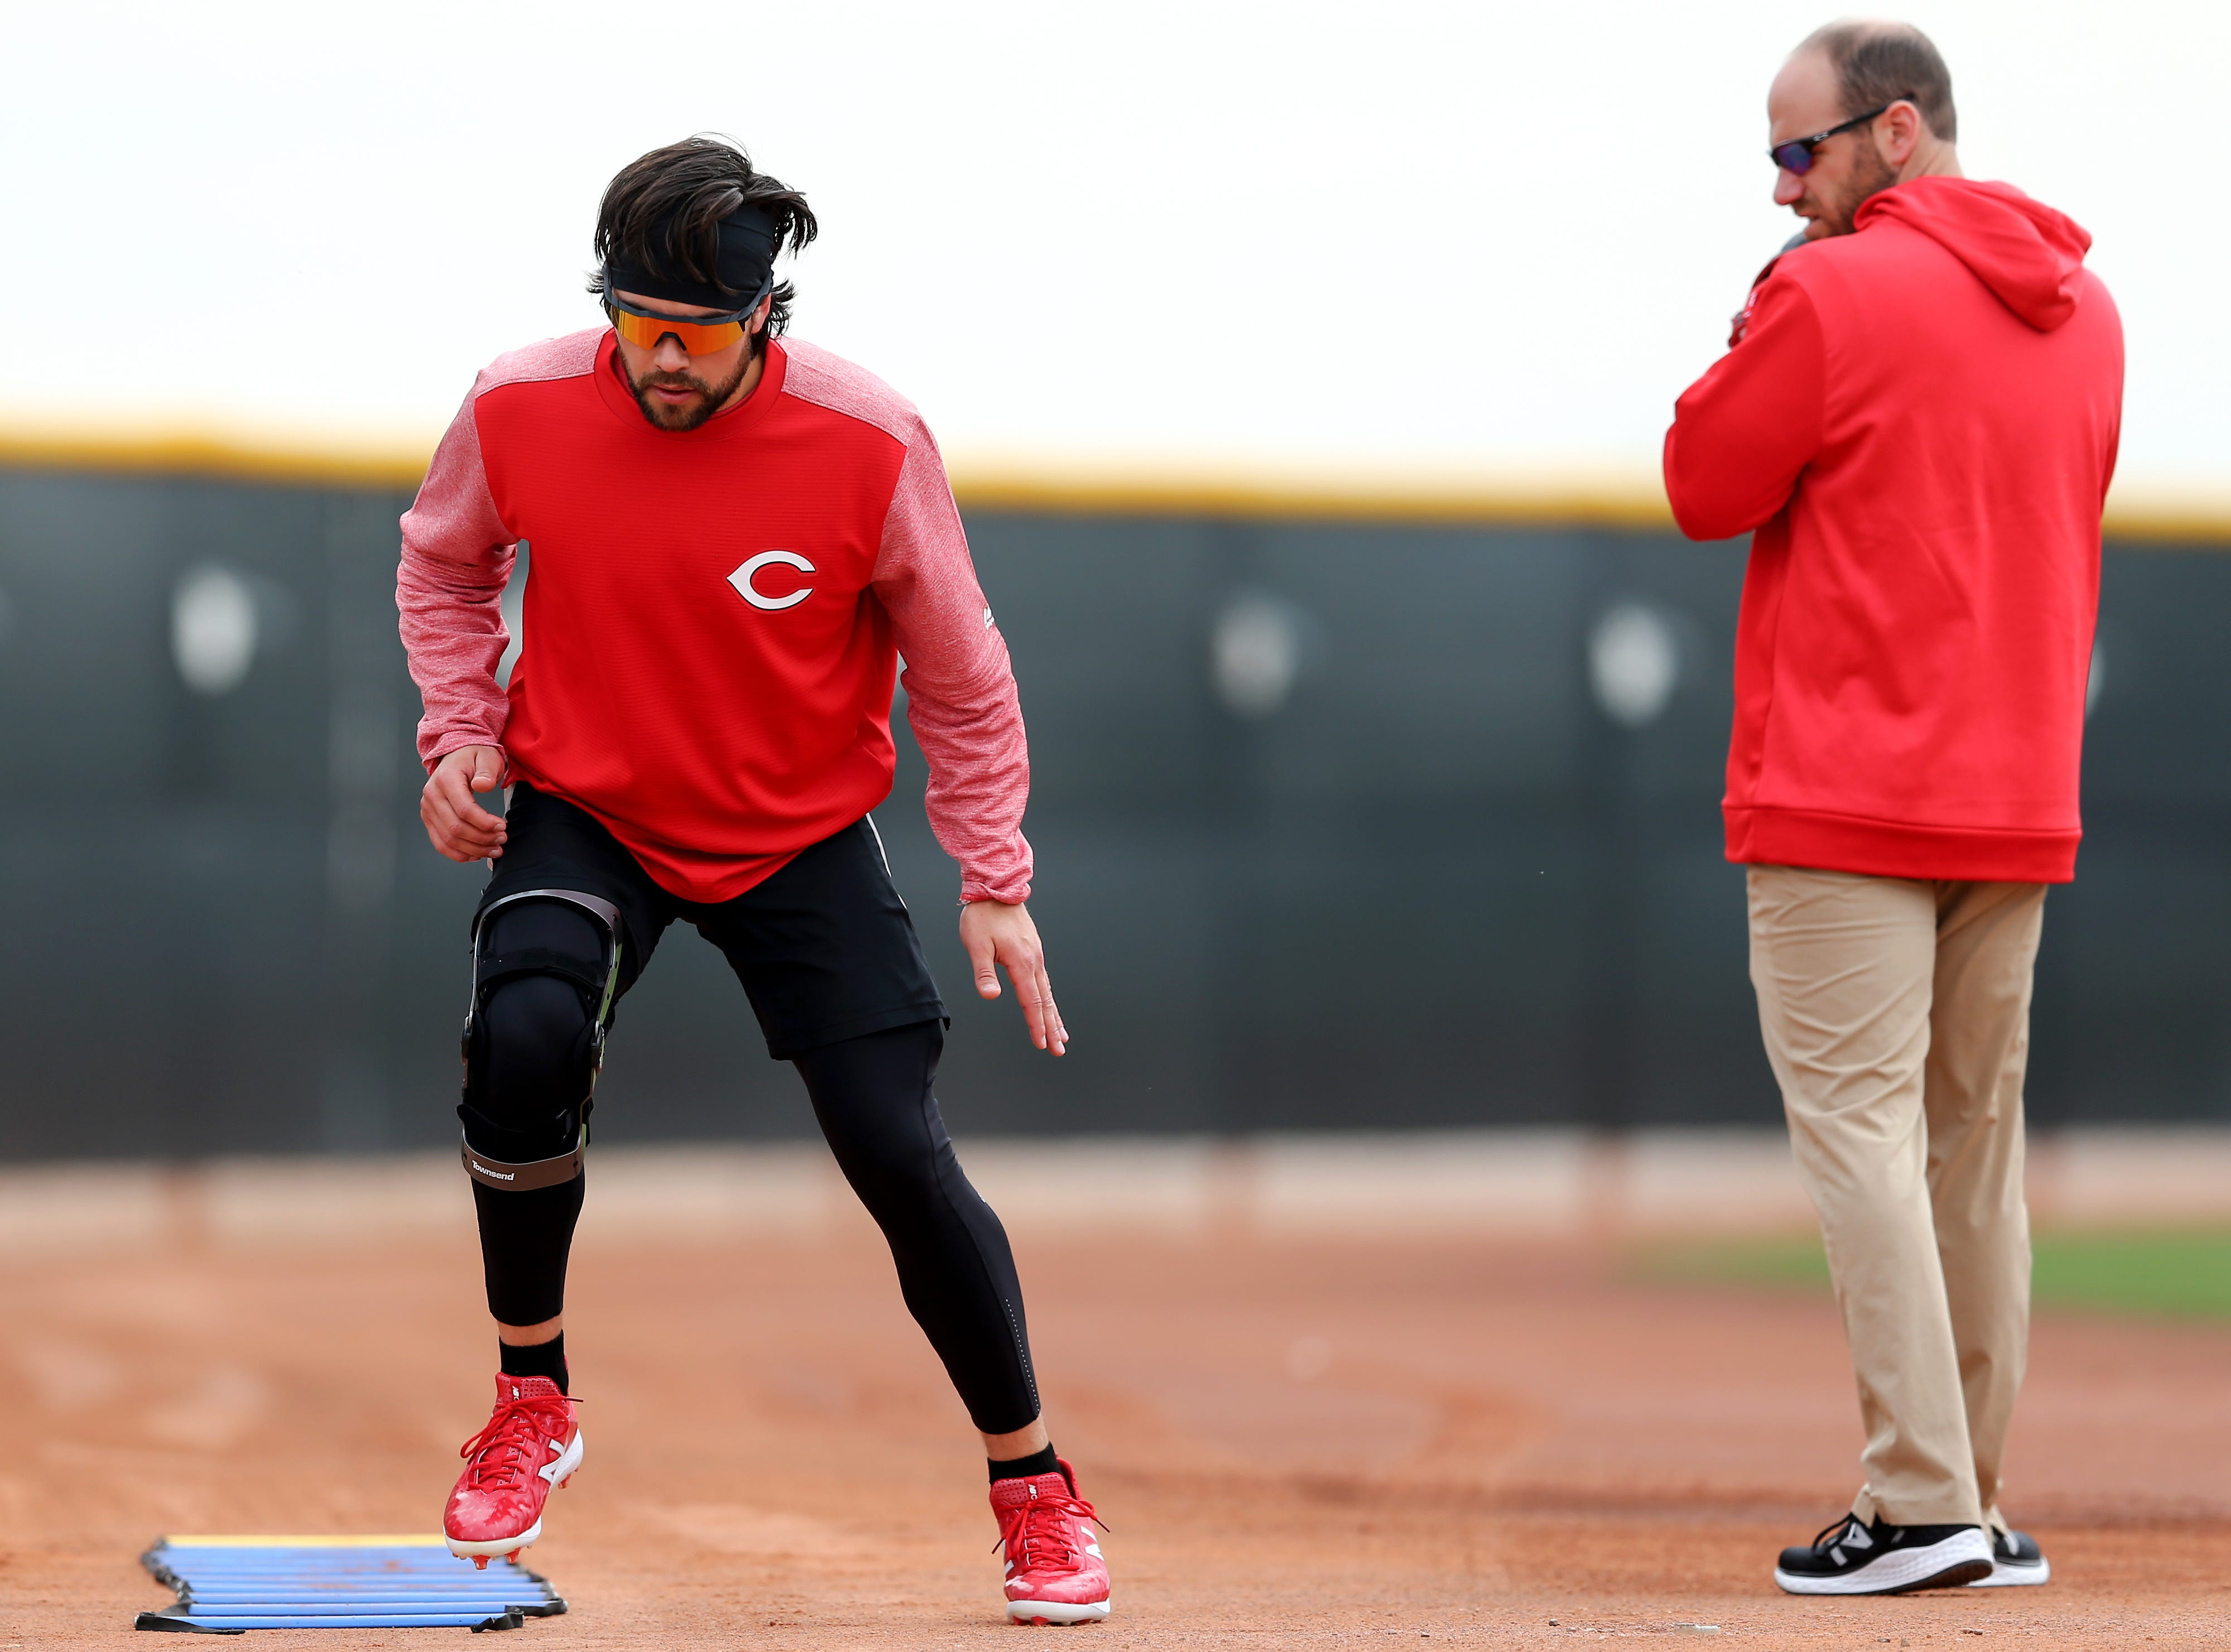 Cincinnati Reds shortstop Alex Blandino (2) works out on the side after suffering a season-ending injury in 2018, Wednesday, Feb. 13, 2019, at the Cincinnati Reds spring training facility in Goodyear, Arizona.